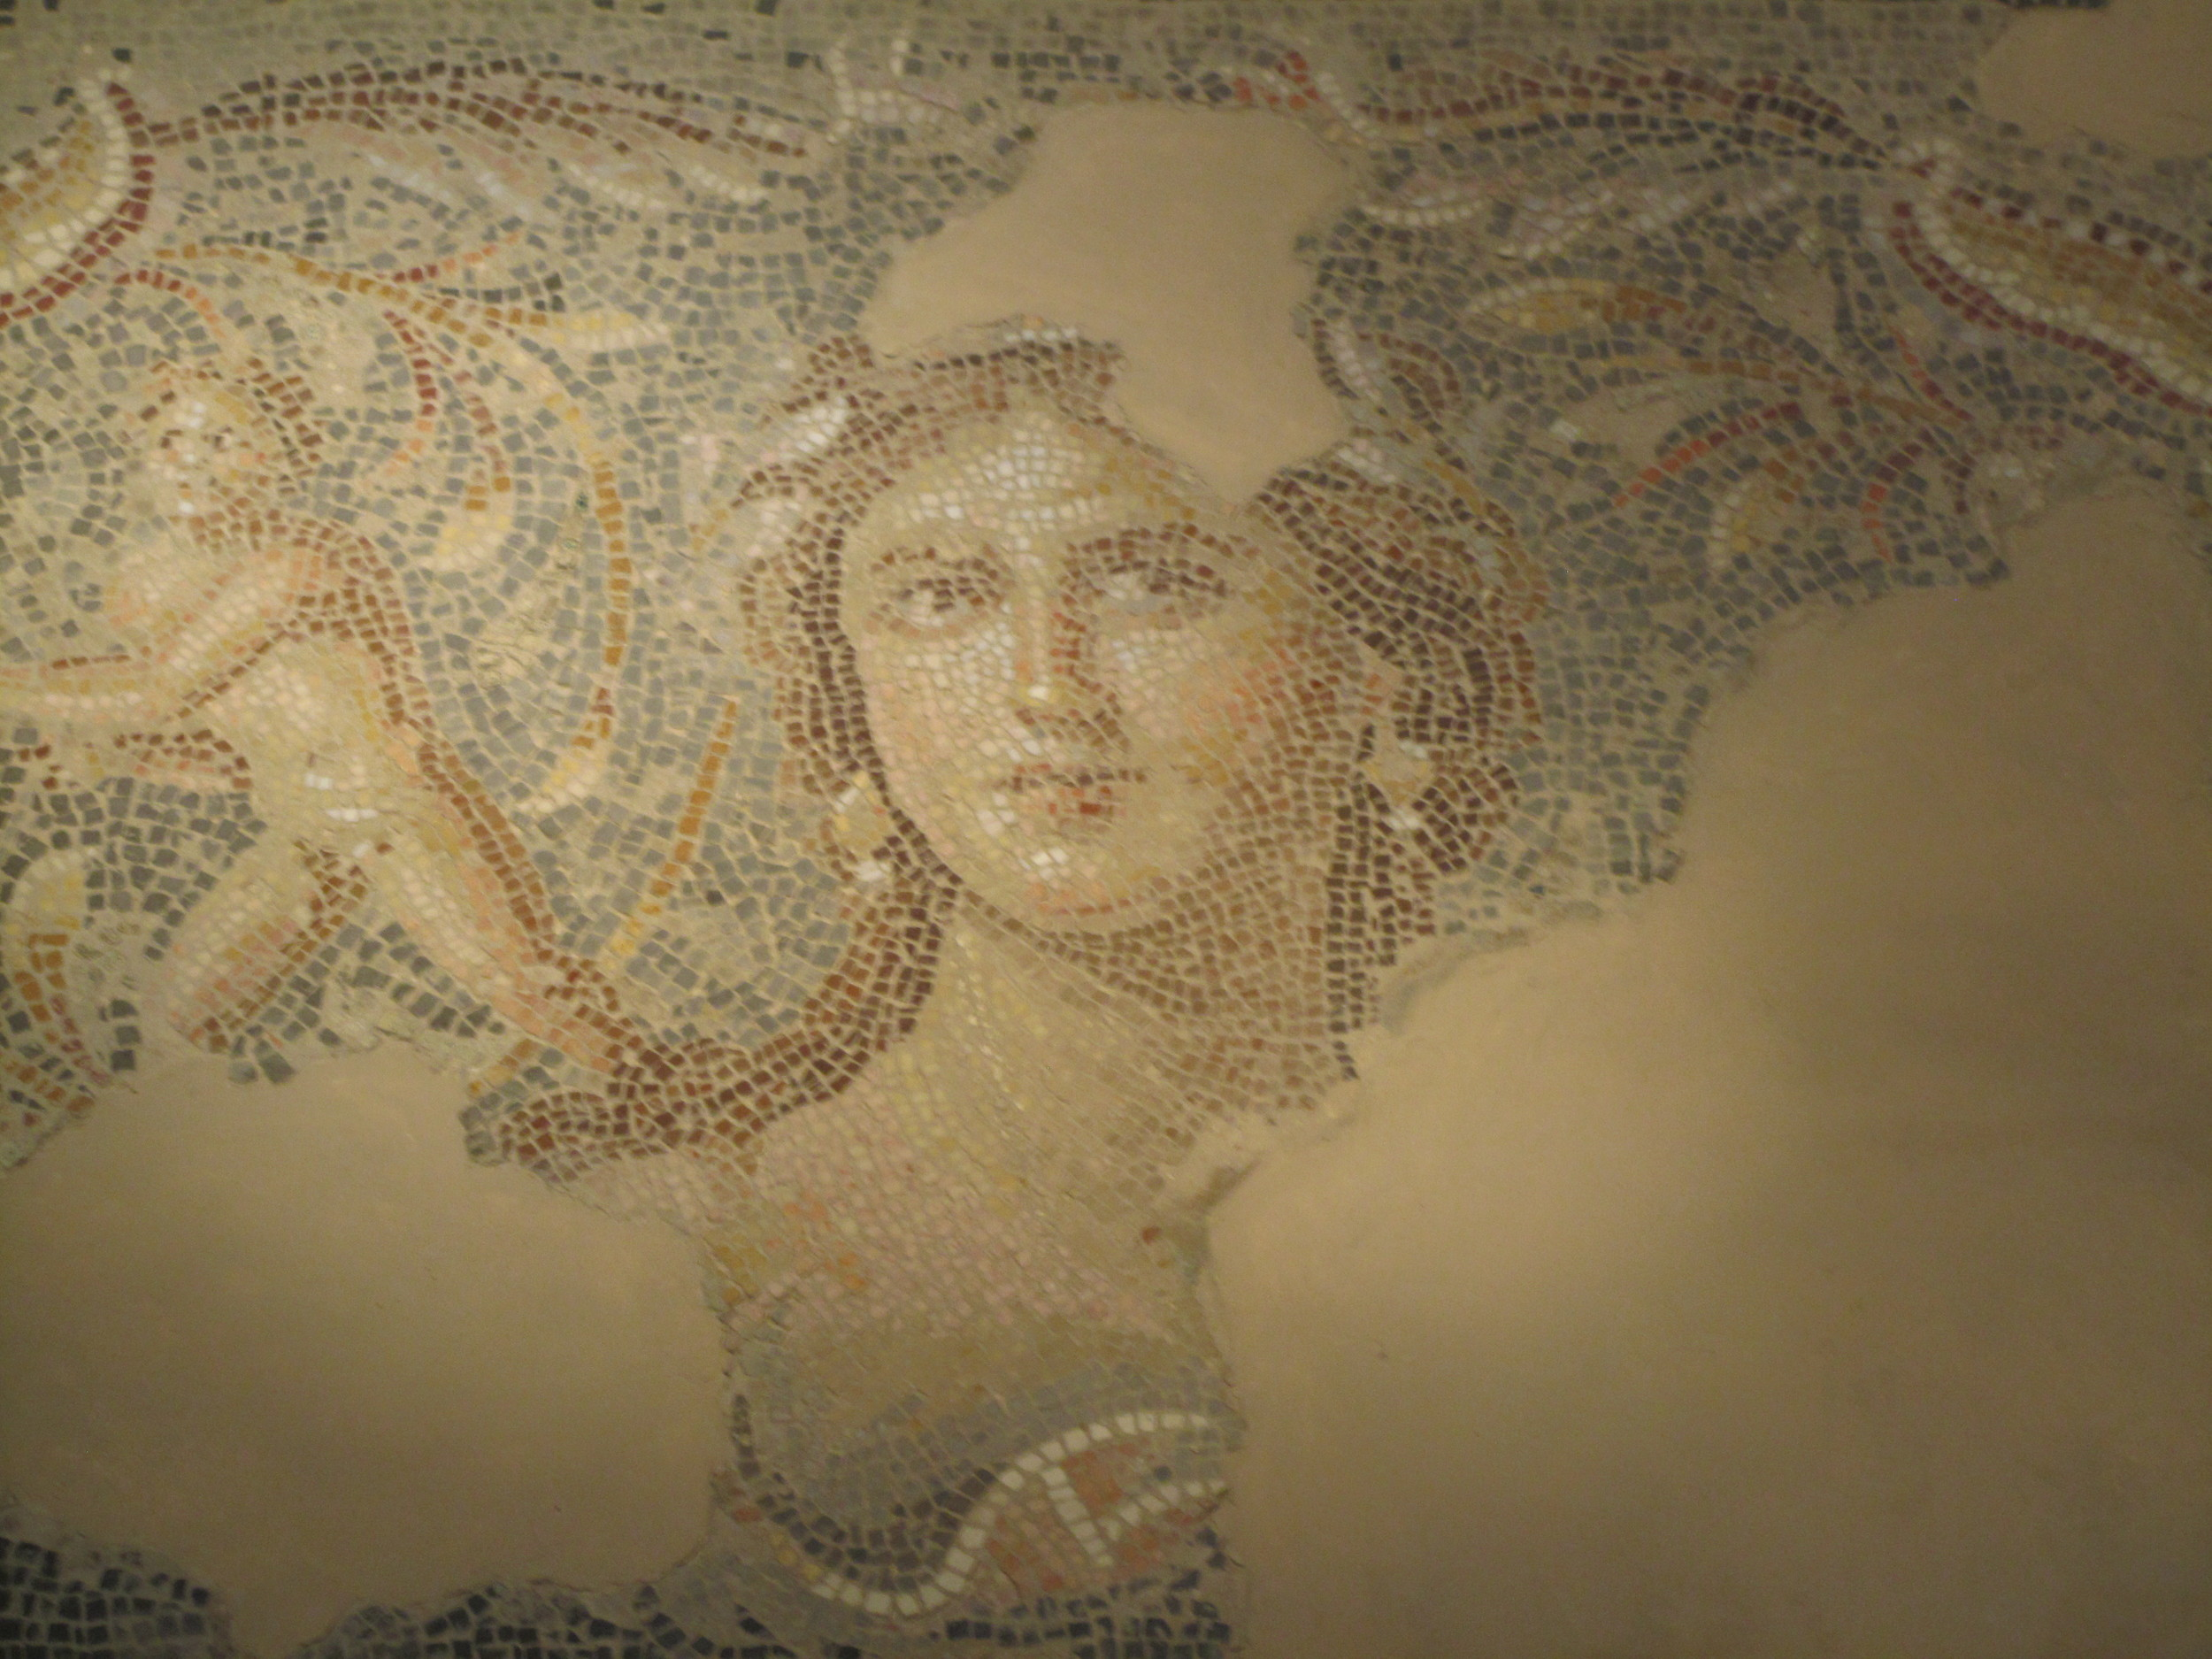 The Mona Lisa of the Galilee mosaic